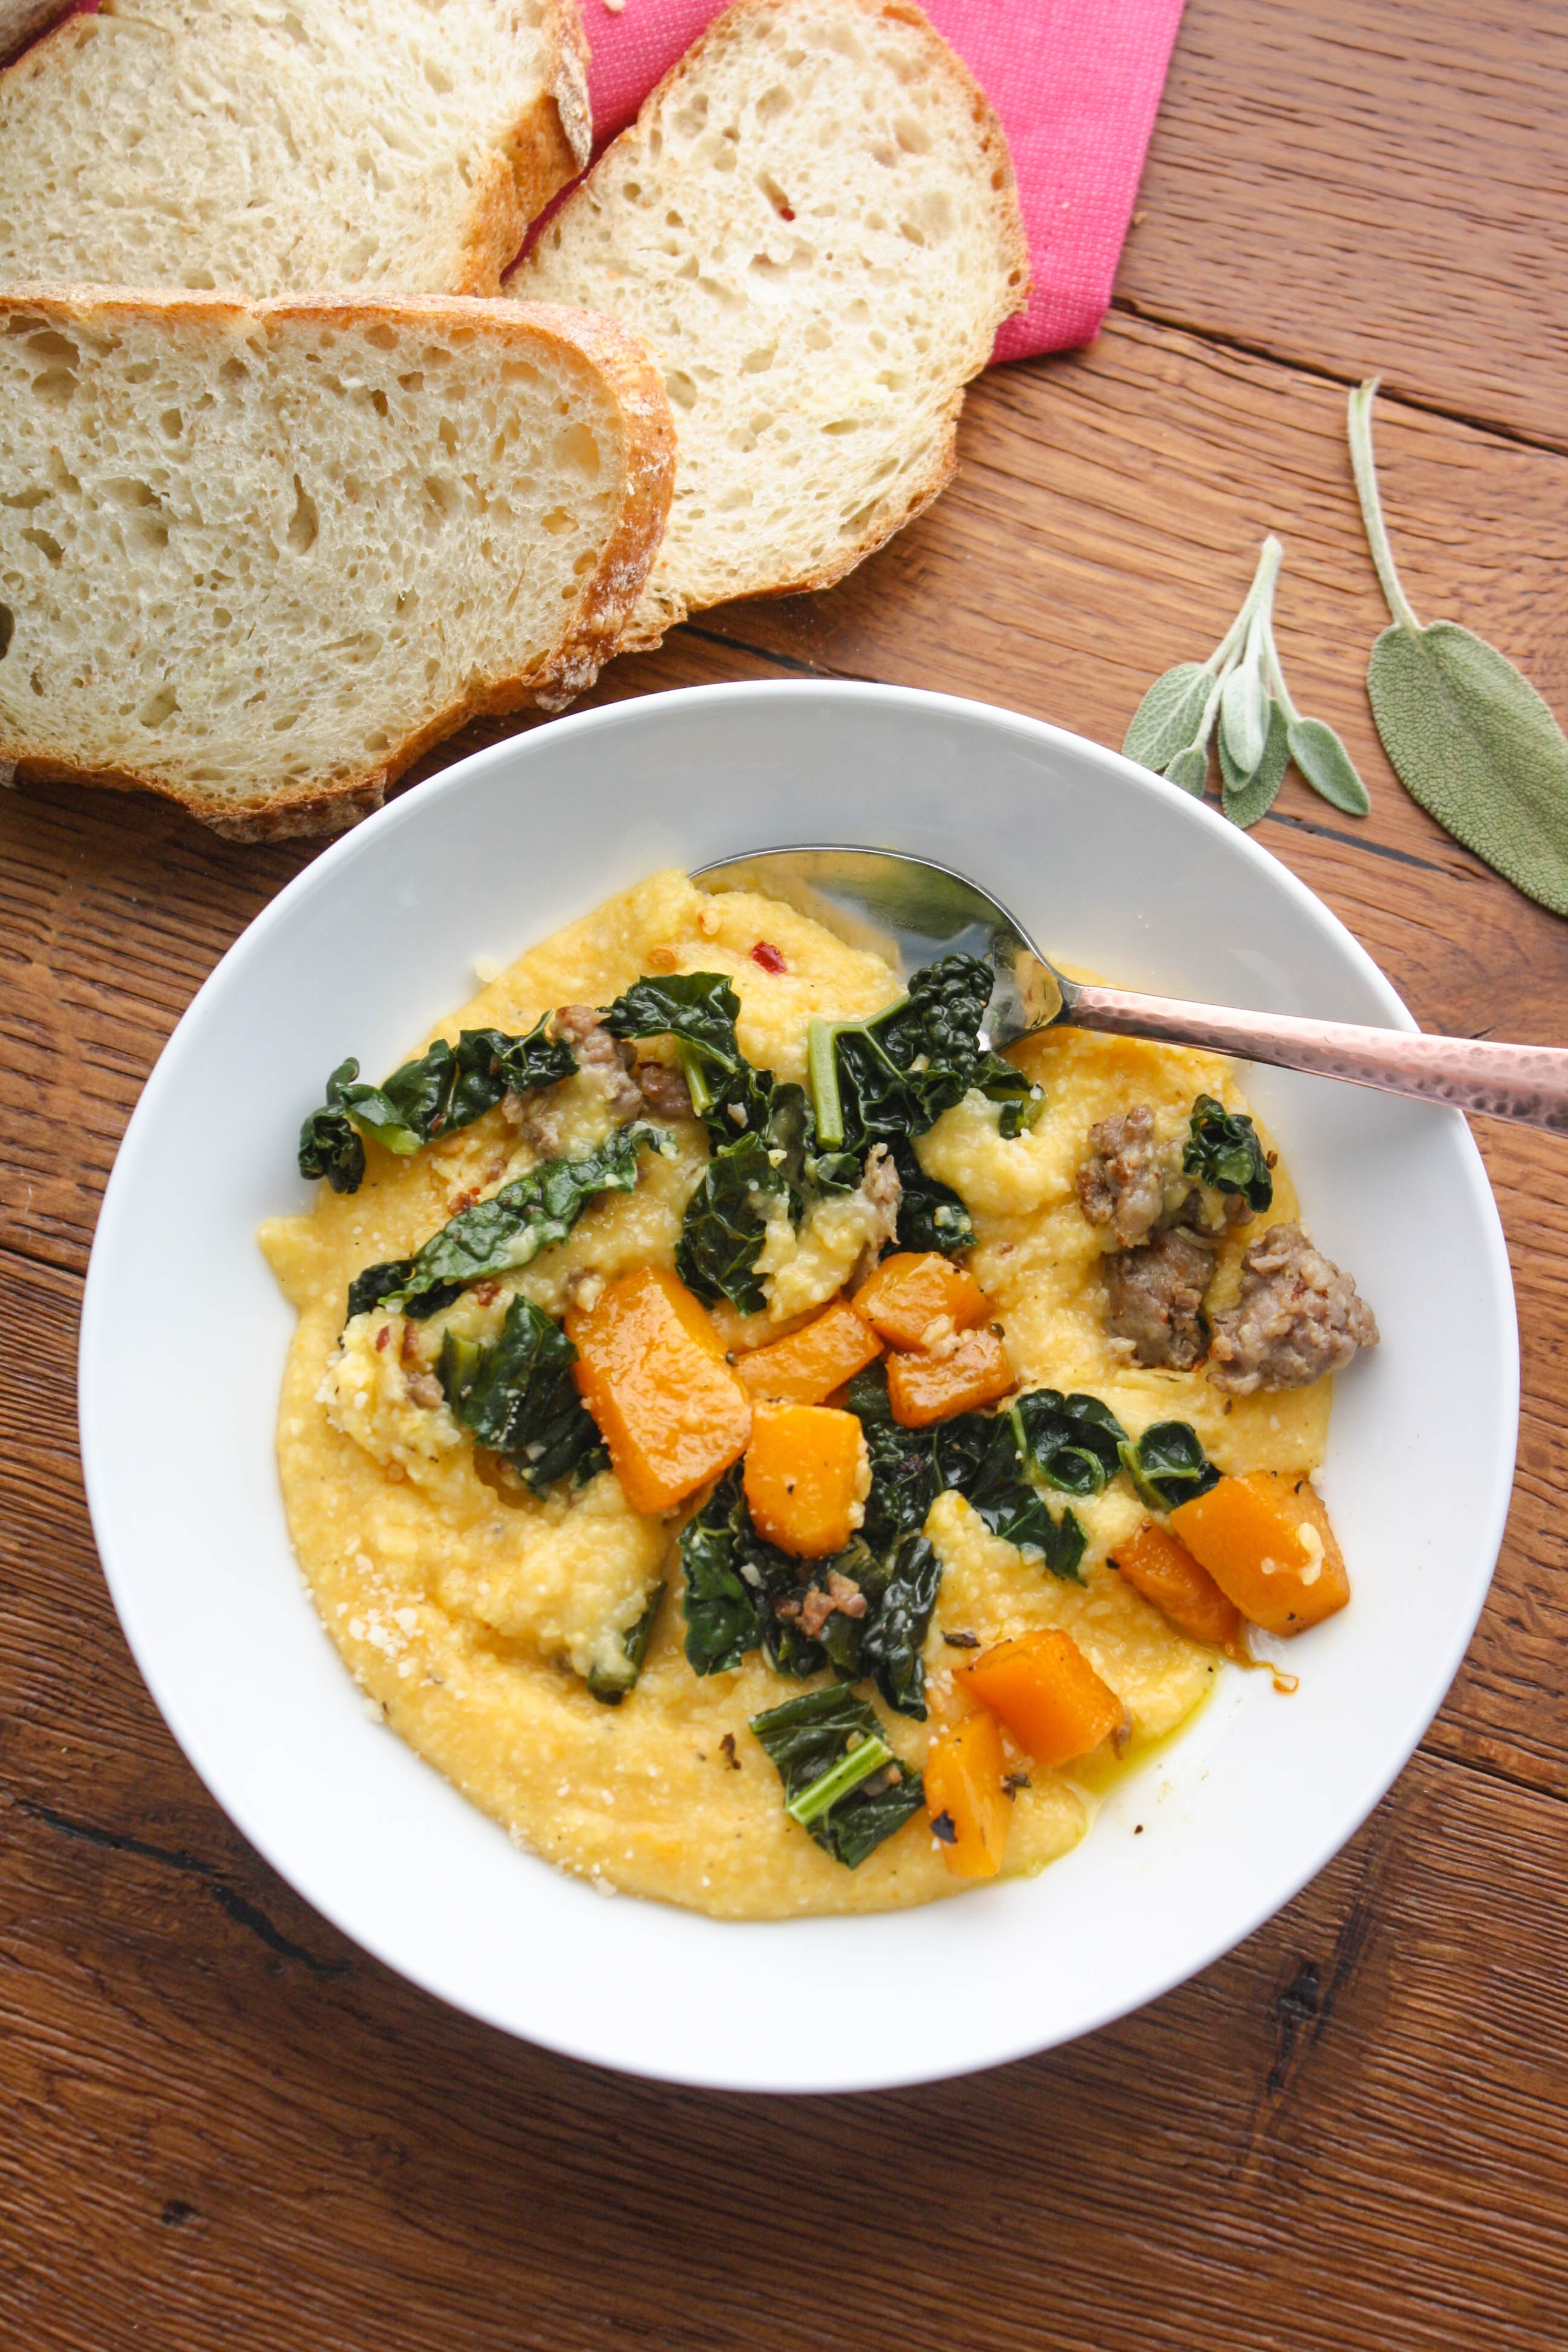 Butternut Squash Grits with Sausage and Kale is a hearty and warming dish to serve when it's cold out. You'll love this hearty and comforting grits dish.